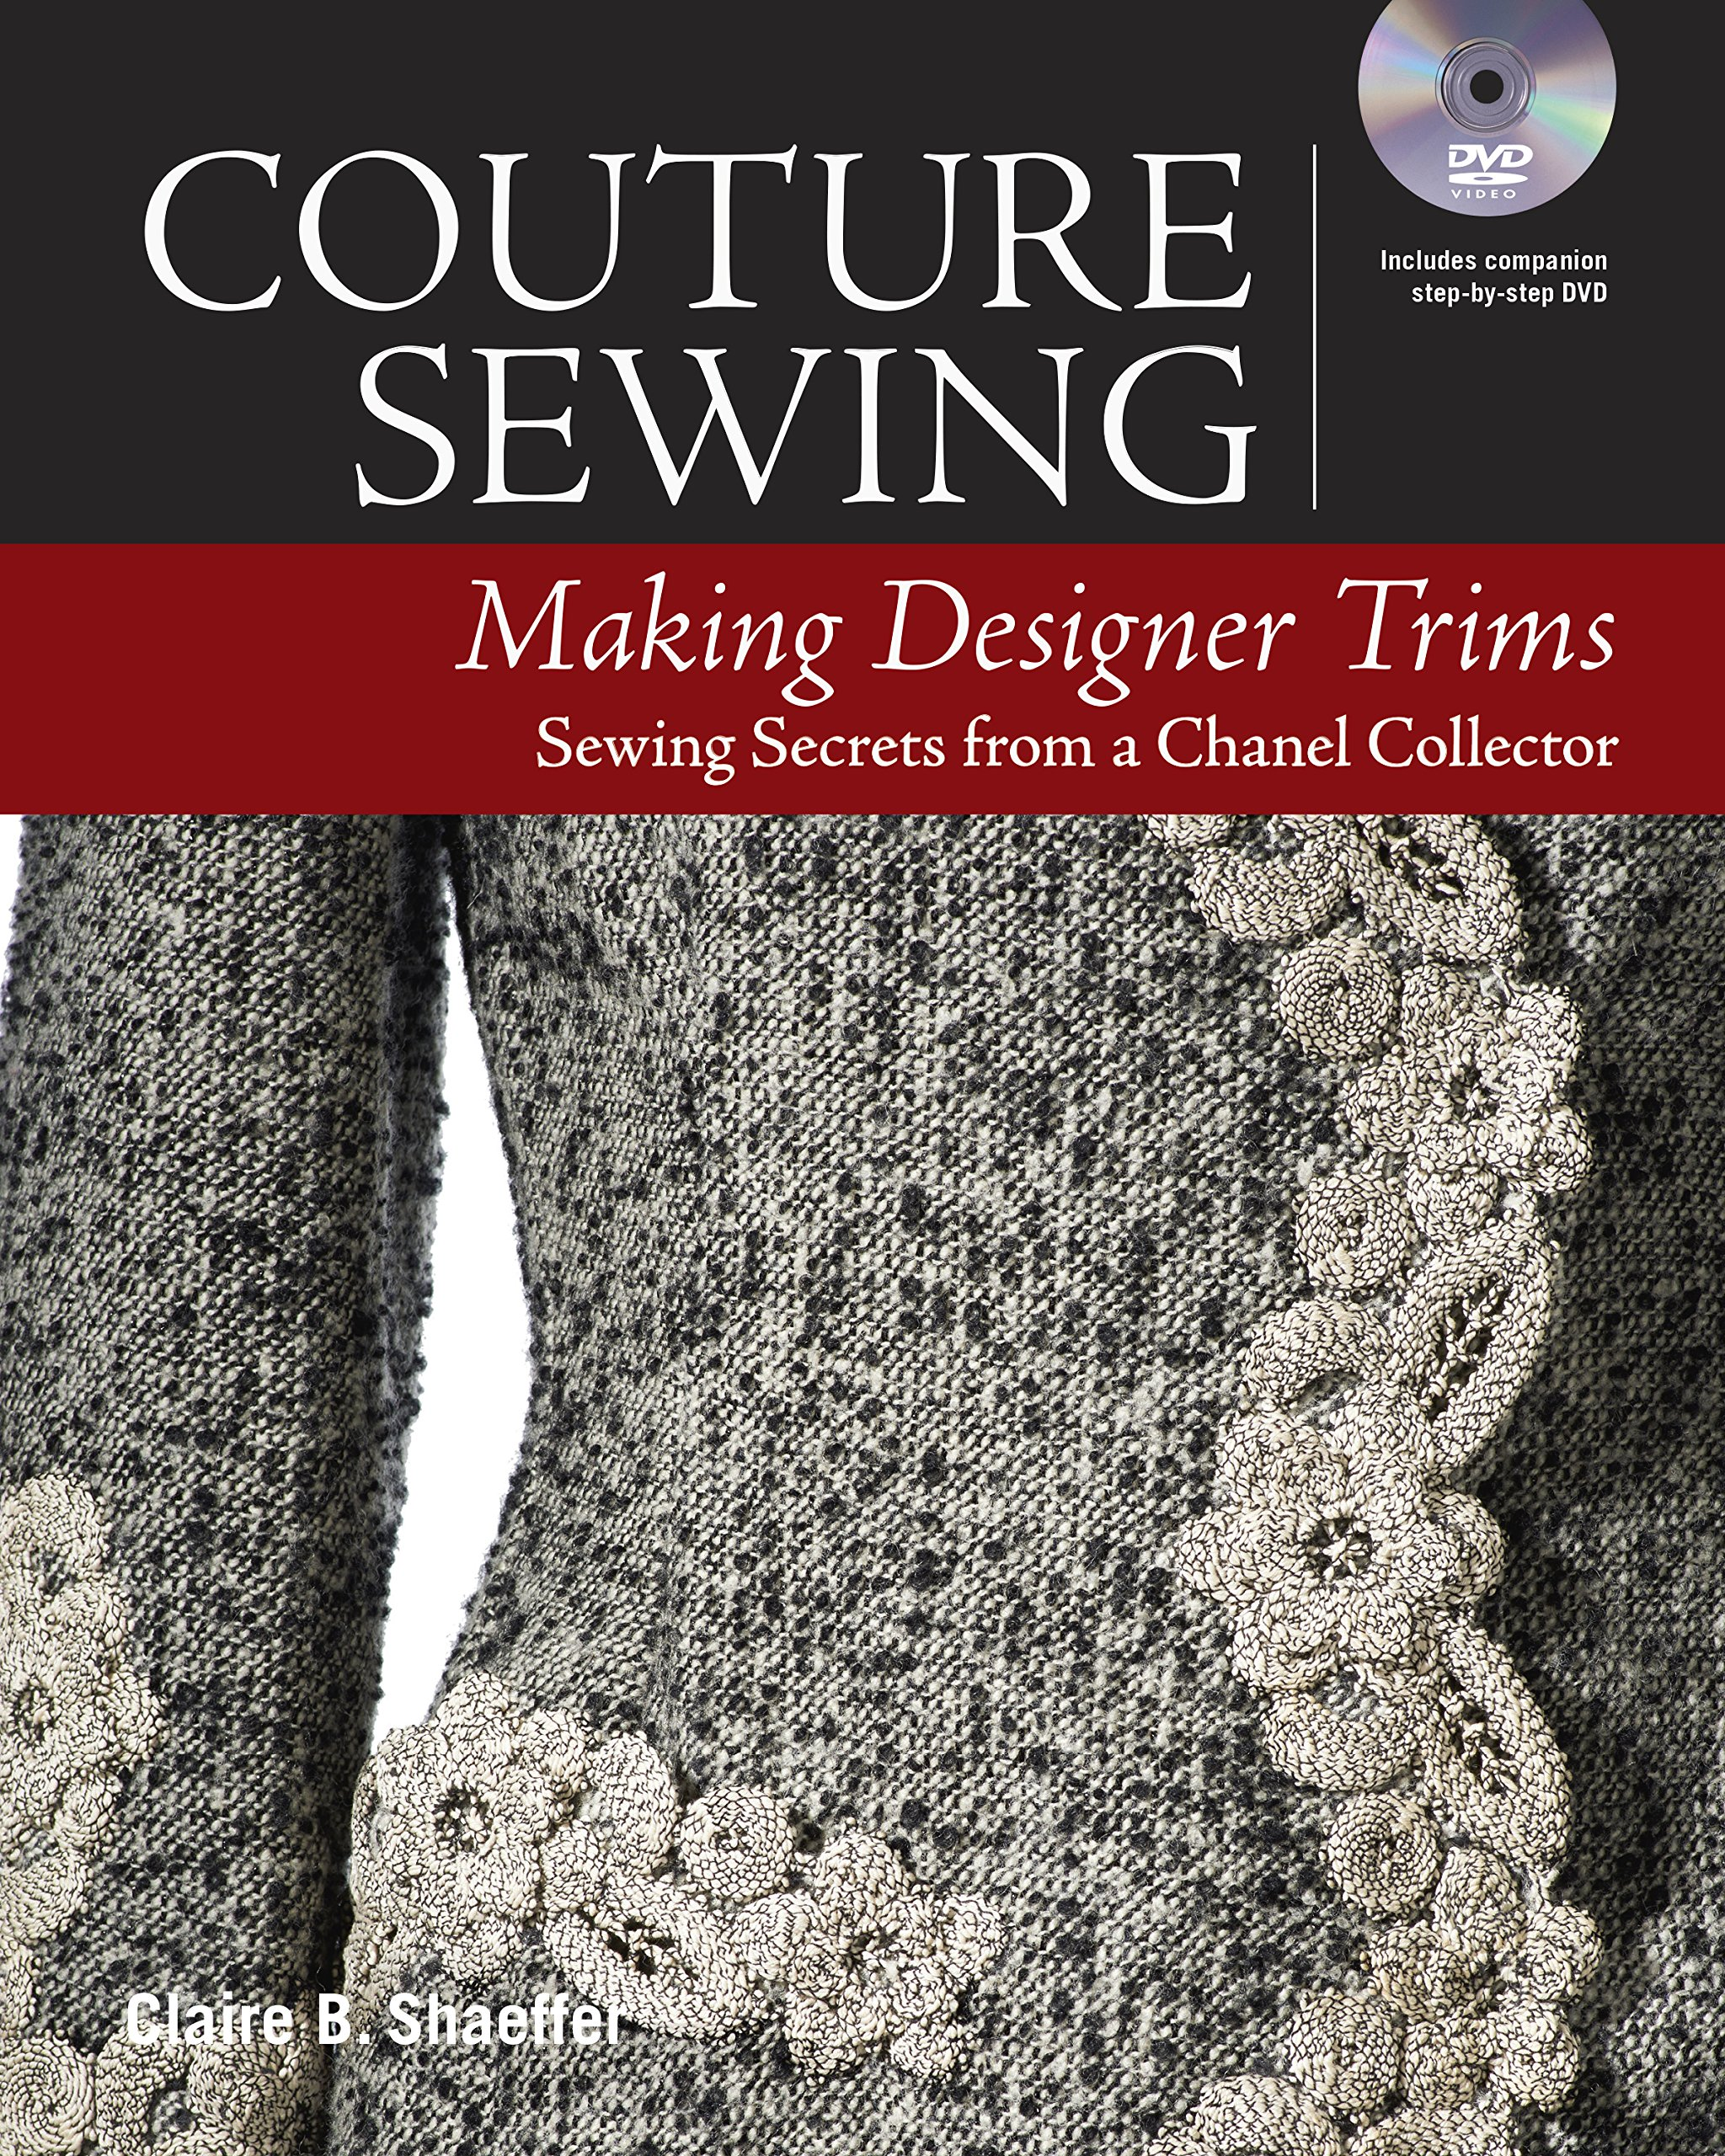 Couture Sewing  Making Designer Trims  English Edition